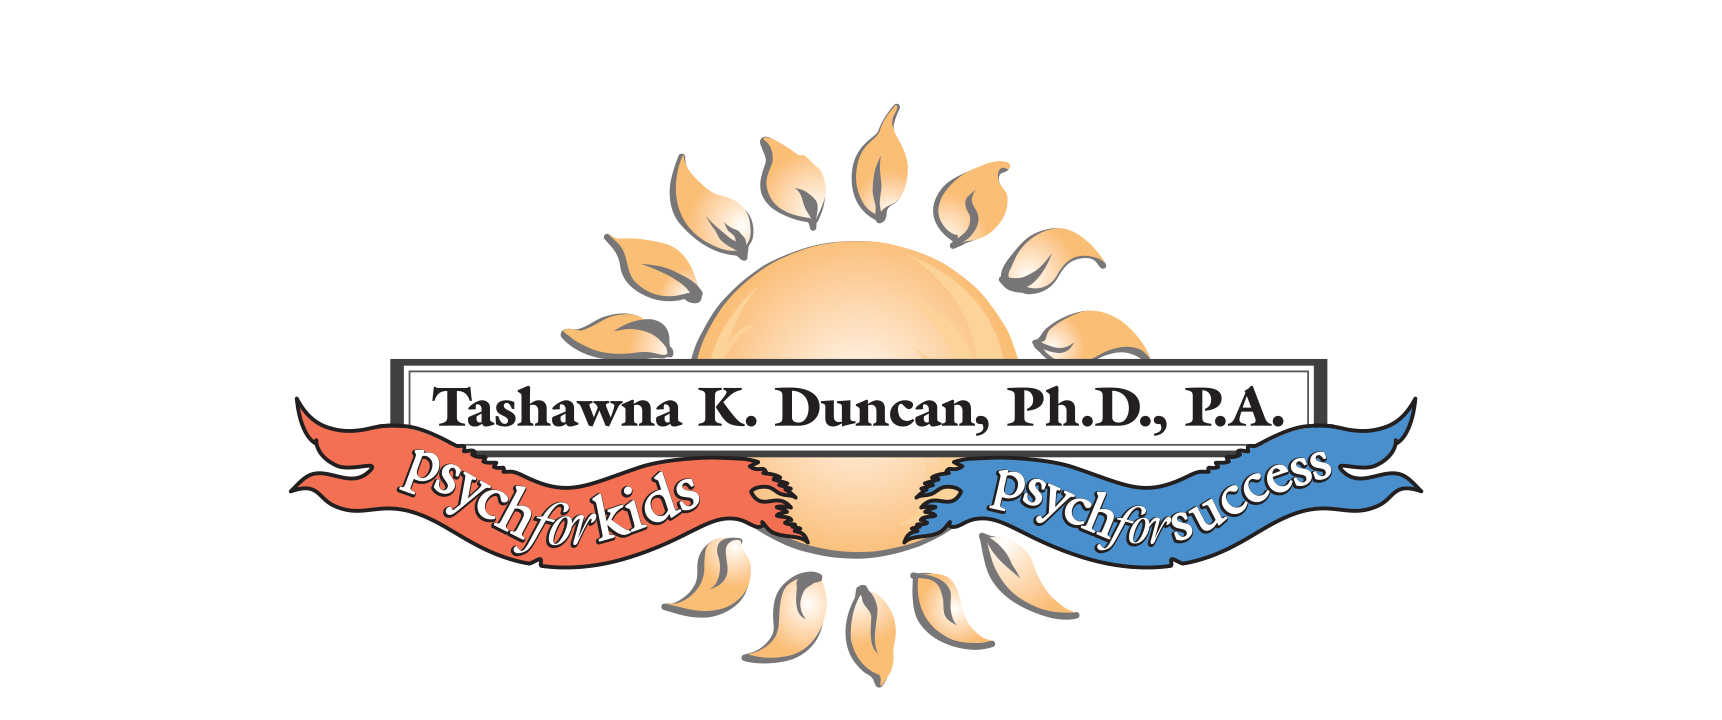 Dr. Duncan's - Psychology for Kids